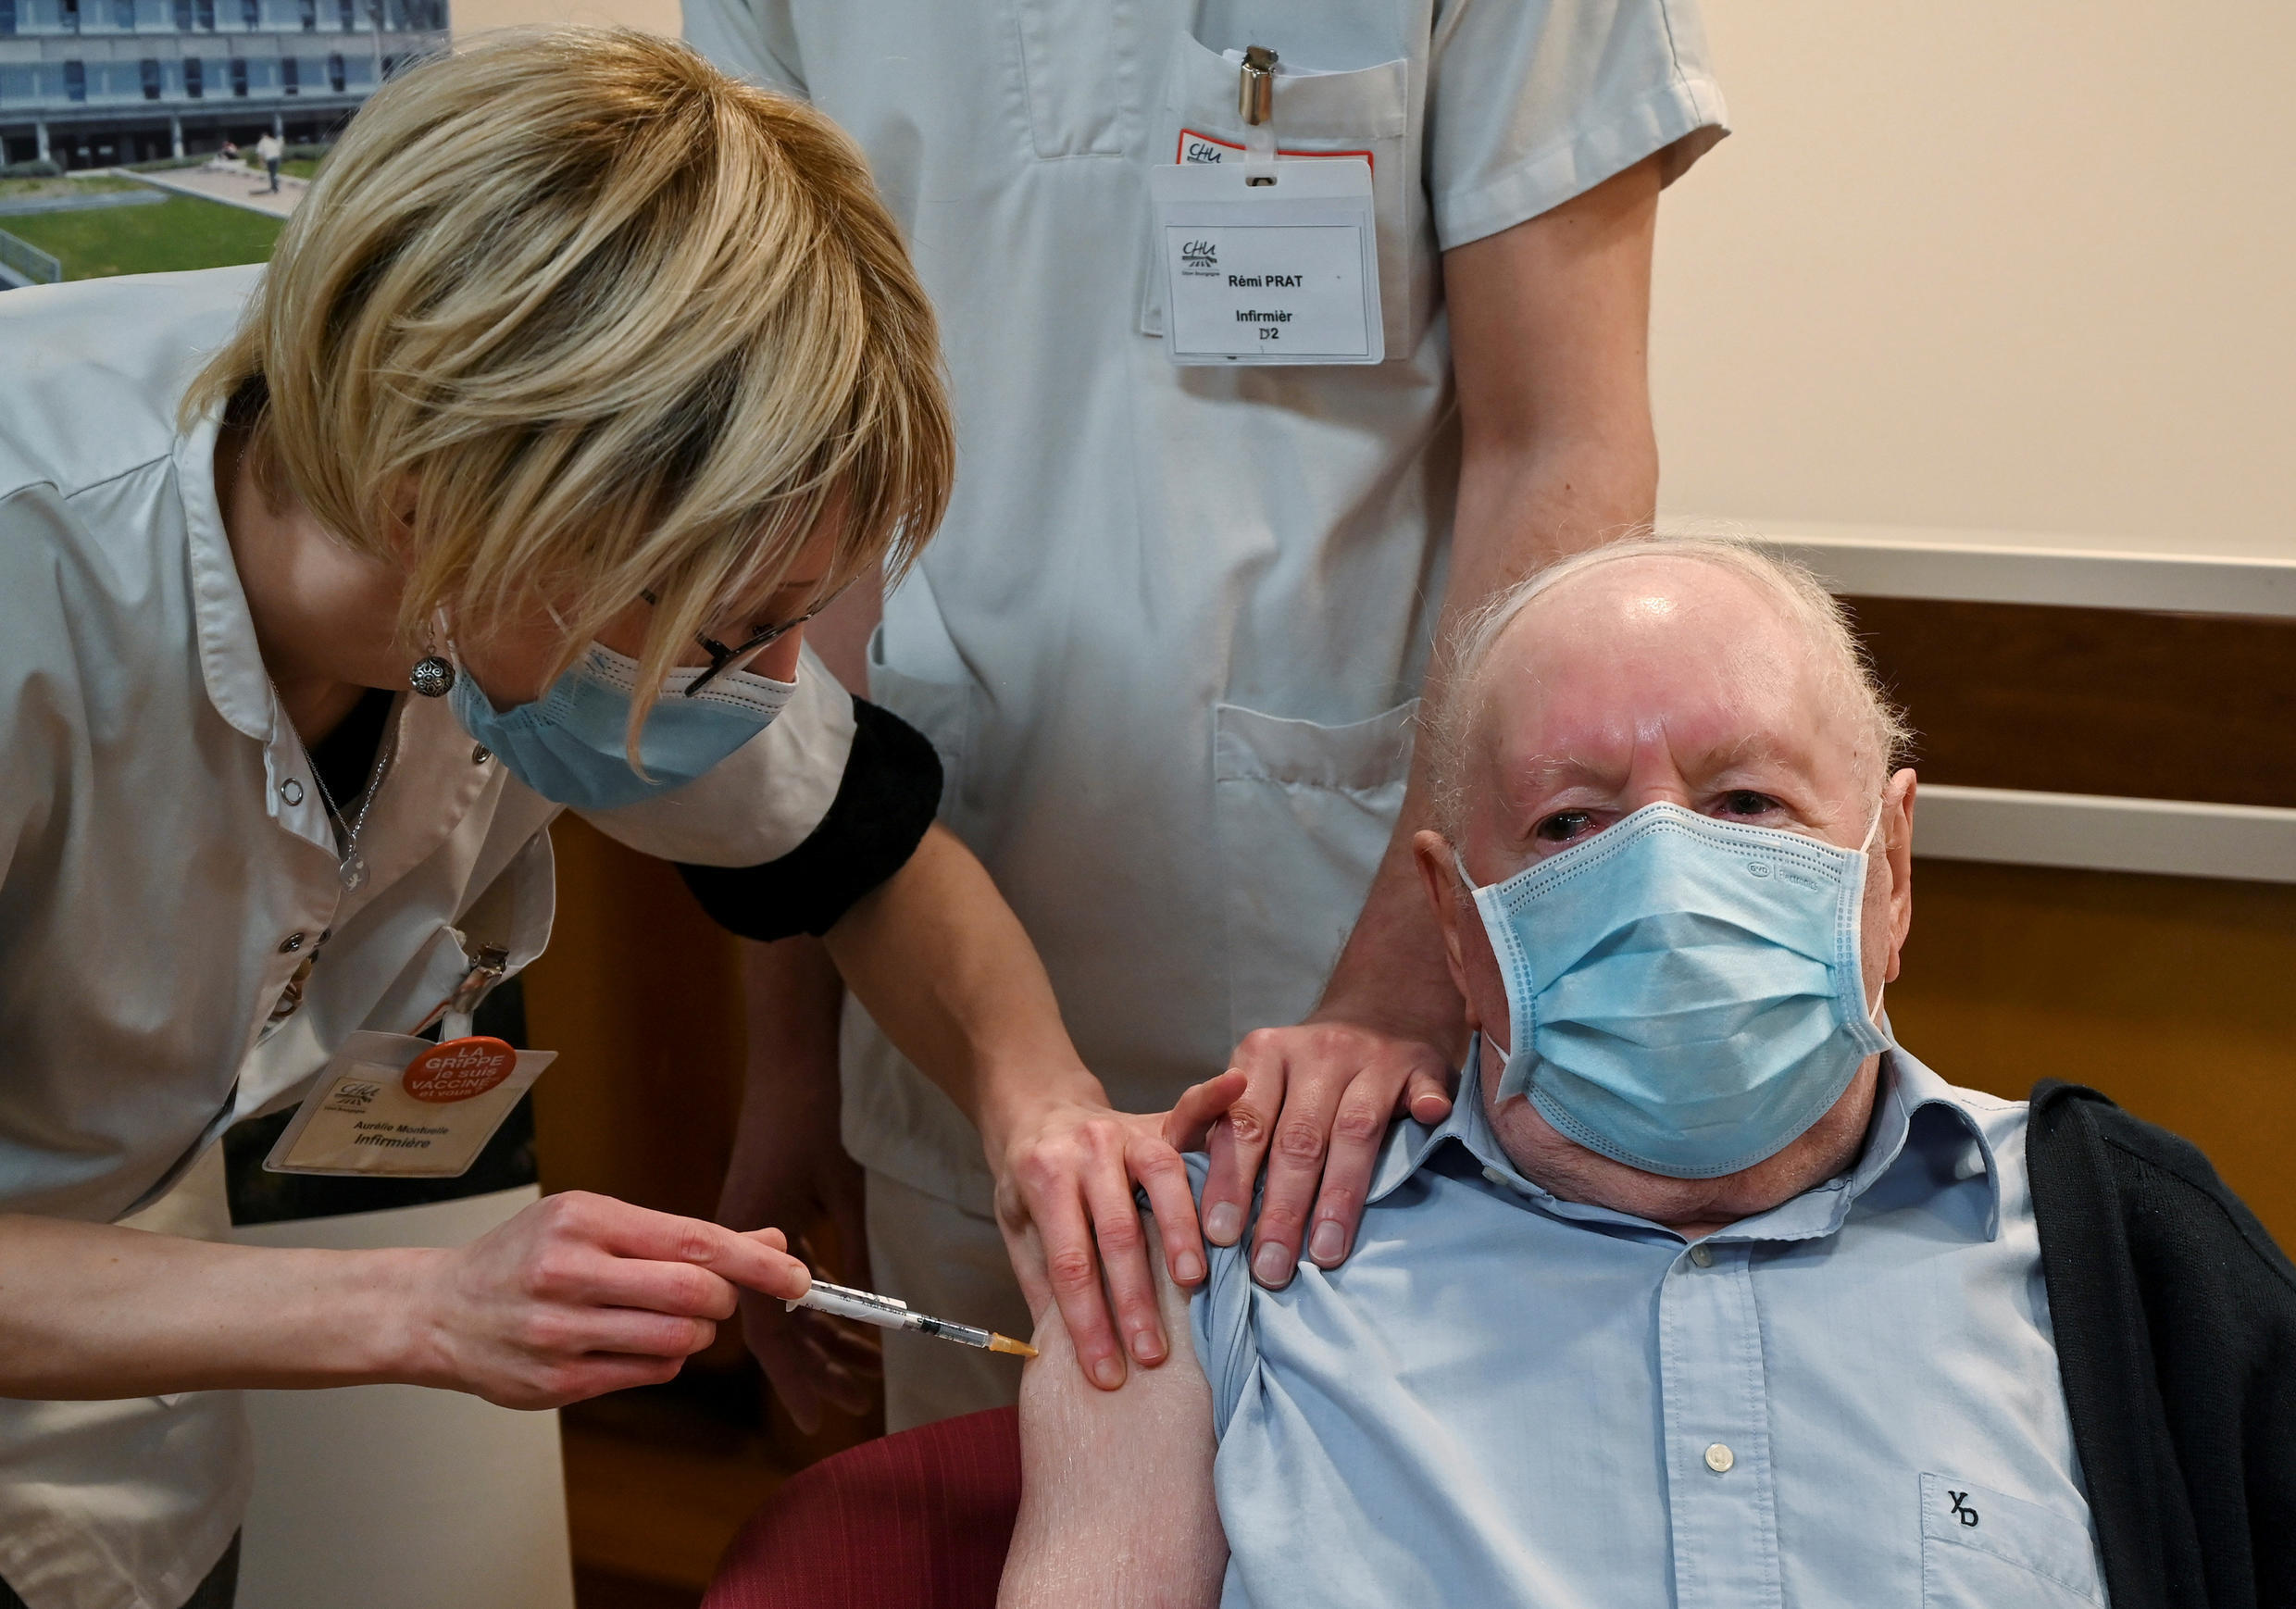 Alain, 92, receives a dose of the Pfizer-BioNTech vaccine at the Champmaillot care home in Dijon on December 27, 2020.